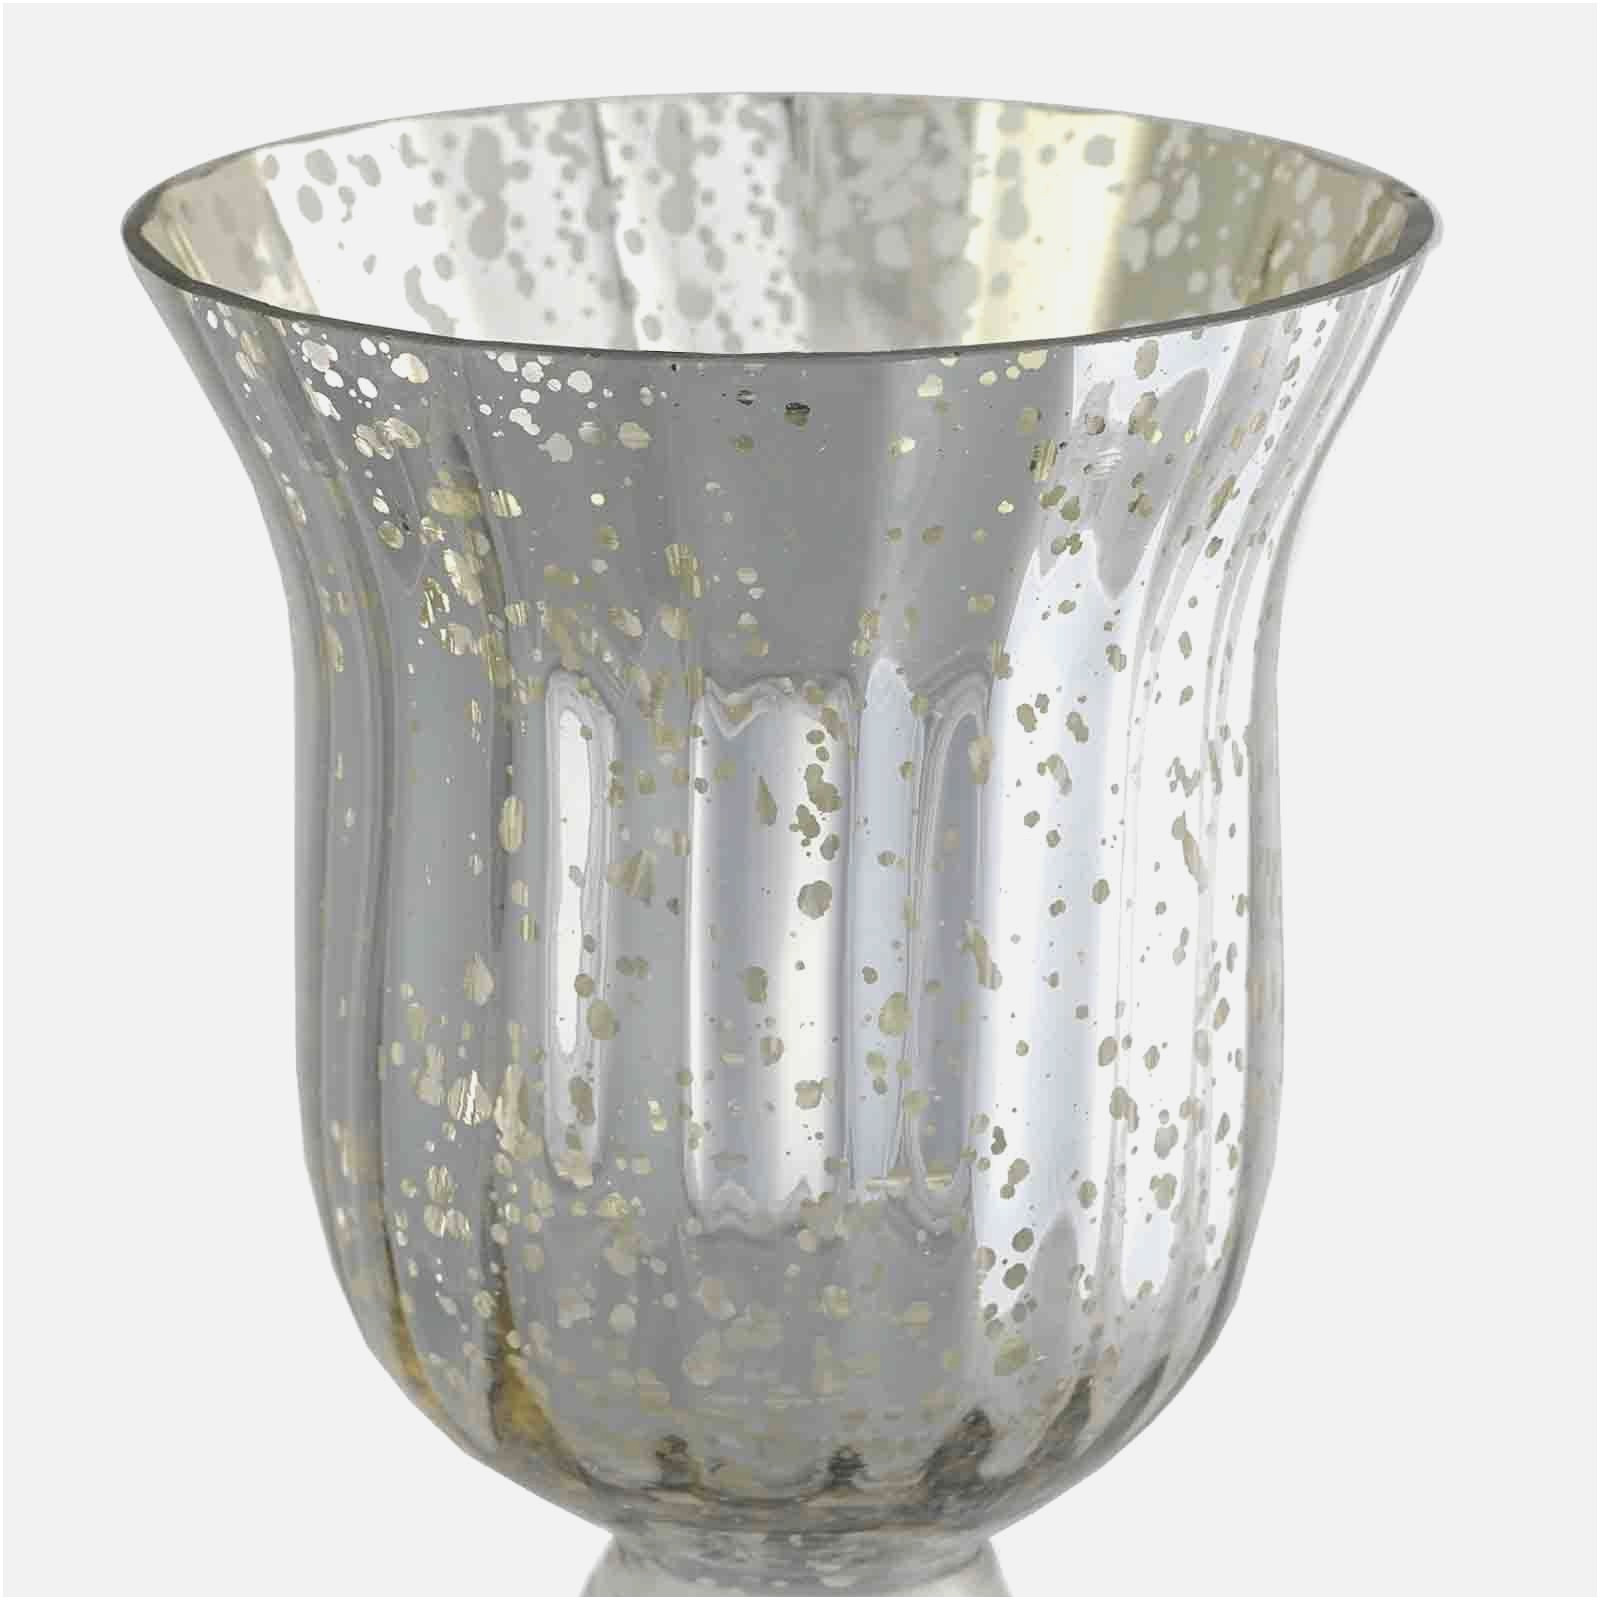 large clear vases for cheap of wedding party favors fresh living room vases wedding inspirational h regarding wedding party favors inspirational 40 lovely wedding party favors gallery of wedding party favors fresh living